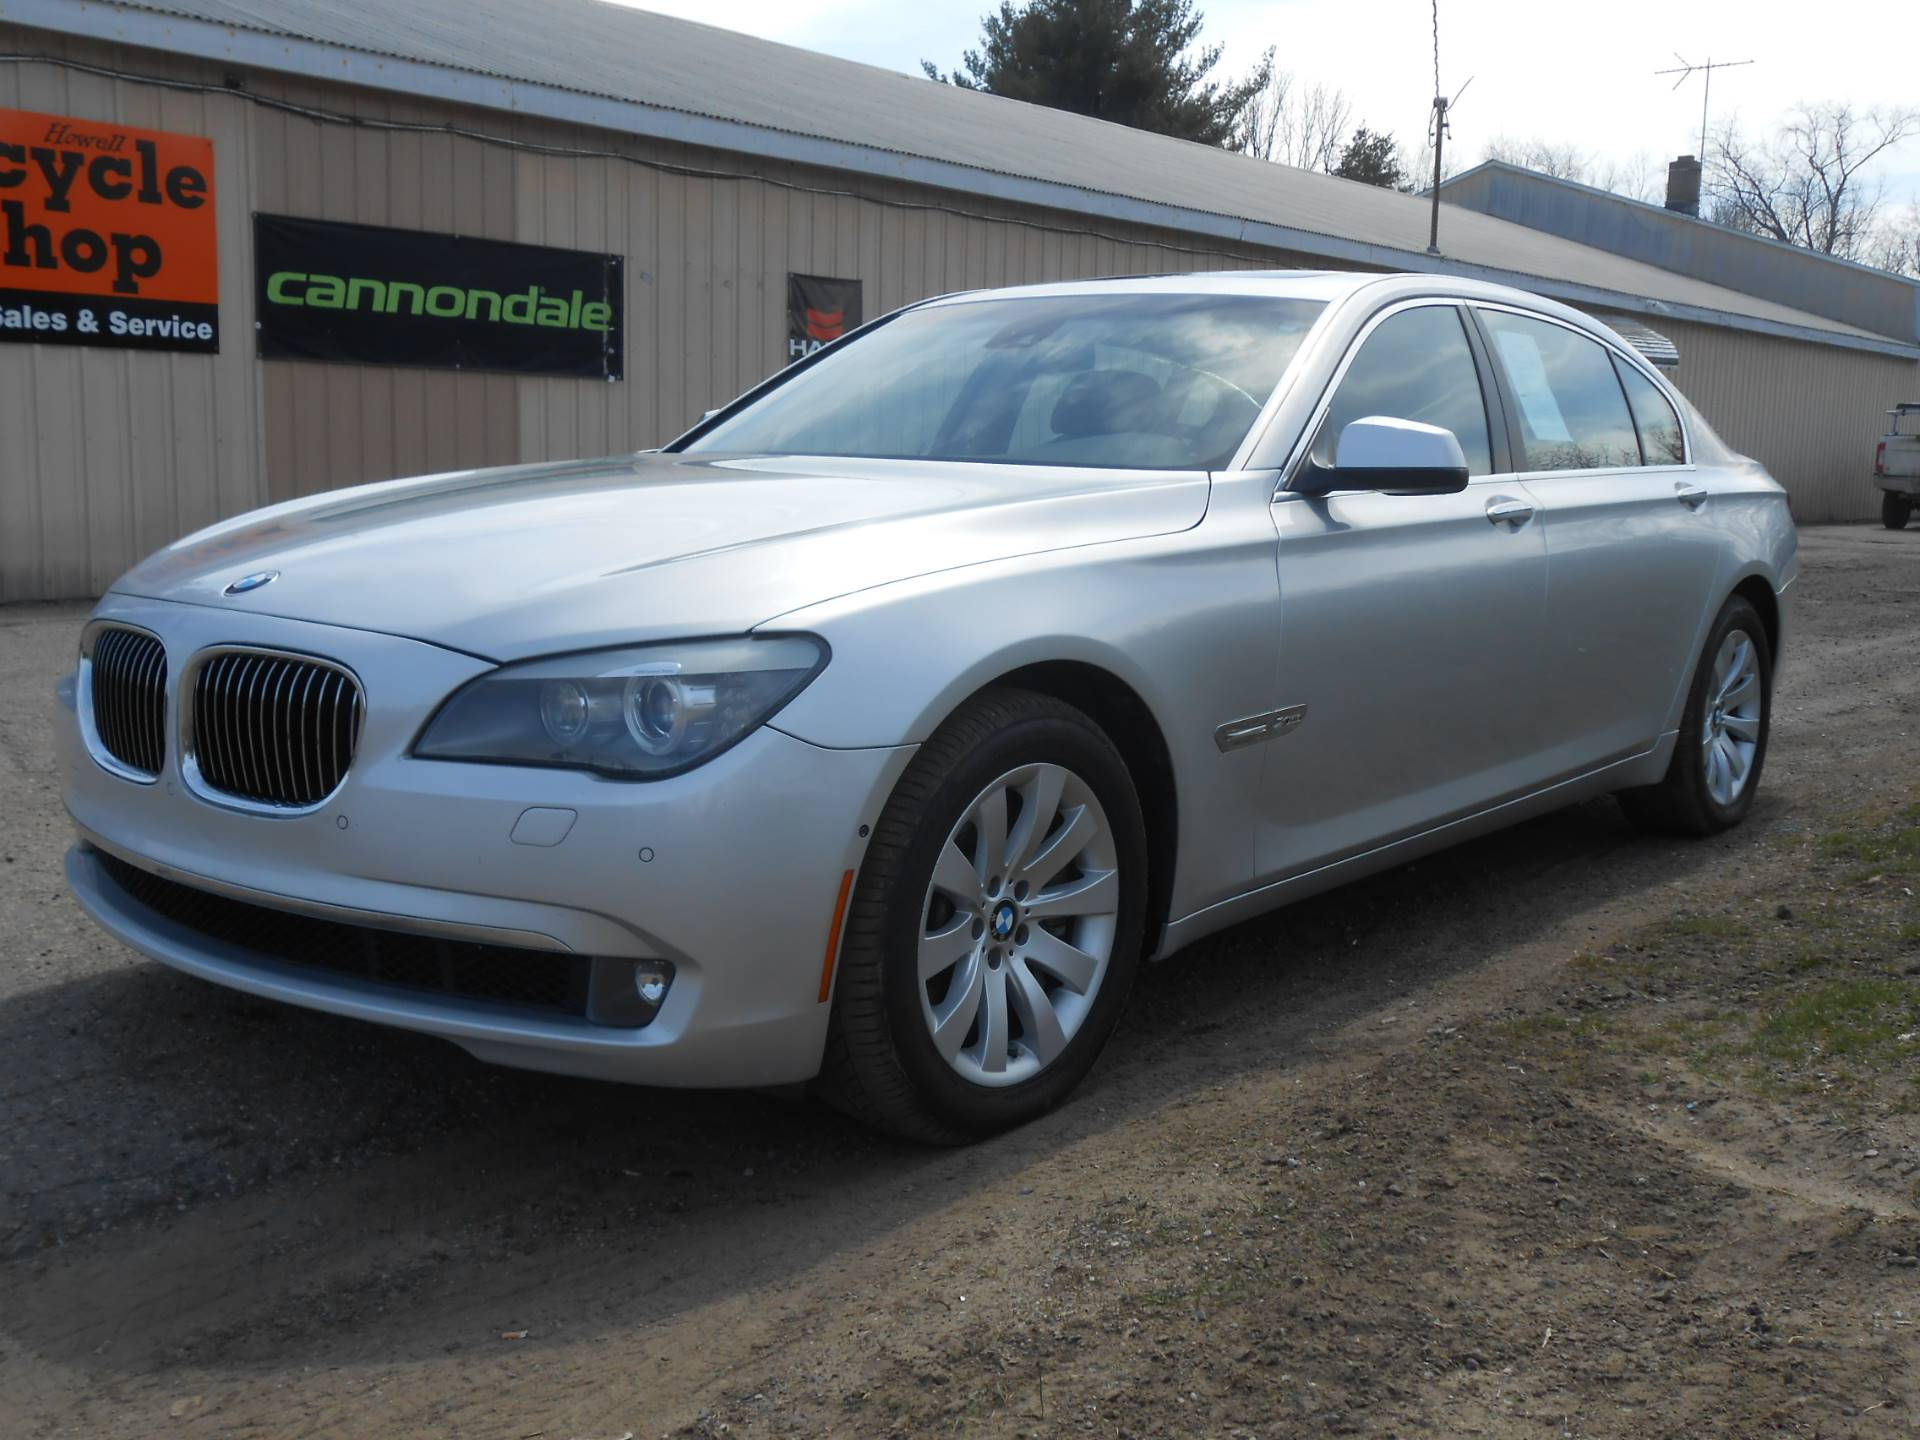 2010 BMW 750li in Howell, Michigan - Photo 4